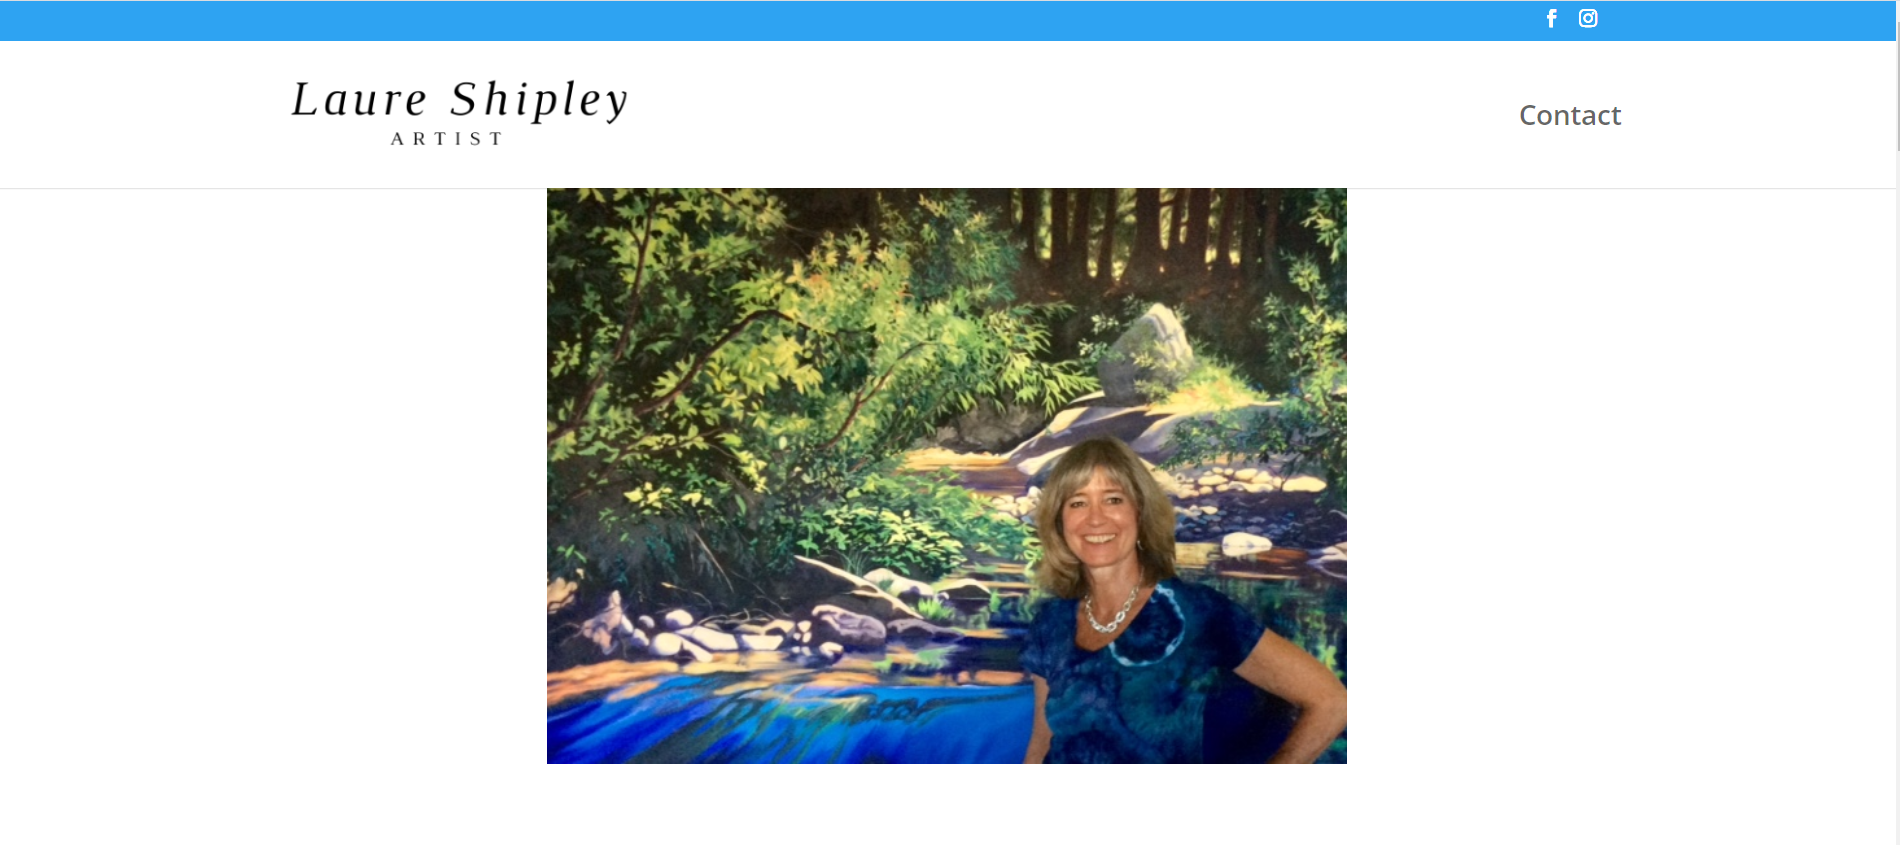 Laure Shipley website designed by JH Web Design